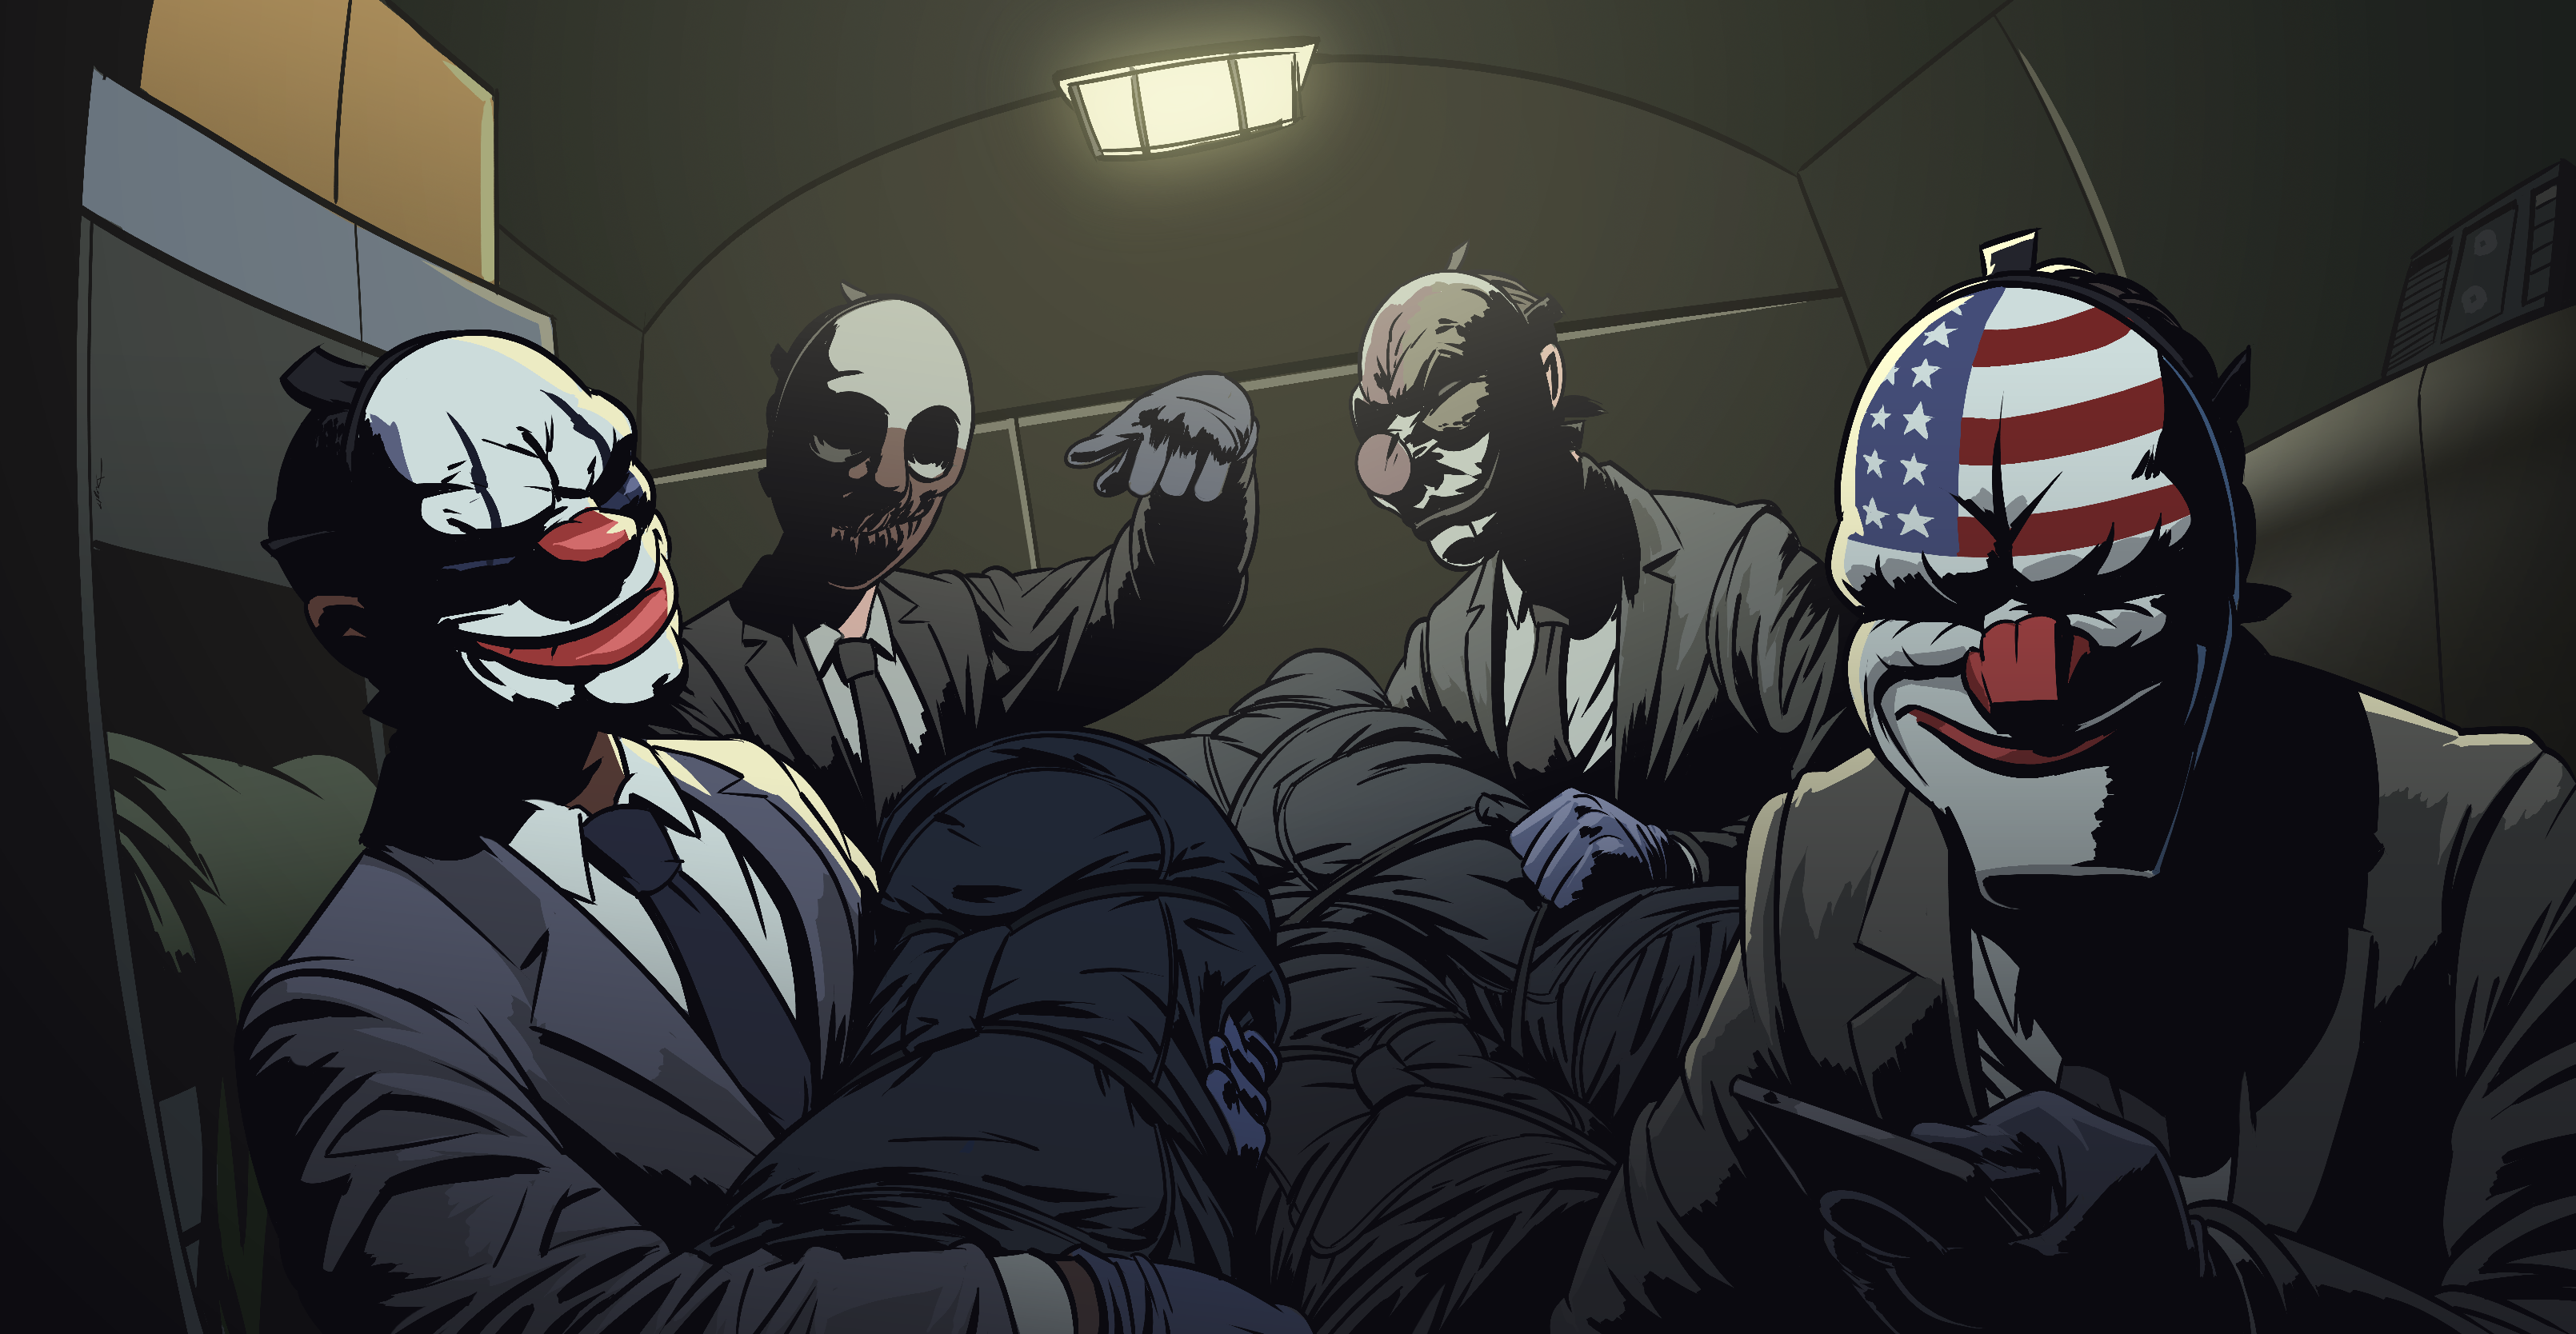 Payday 2 Wallpapers, Pictures, Images